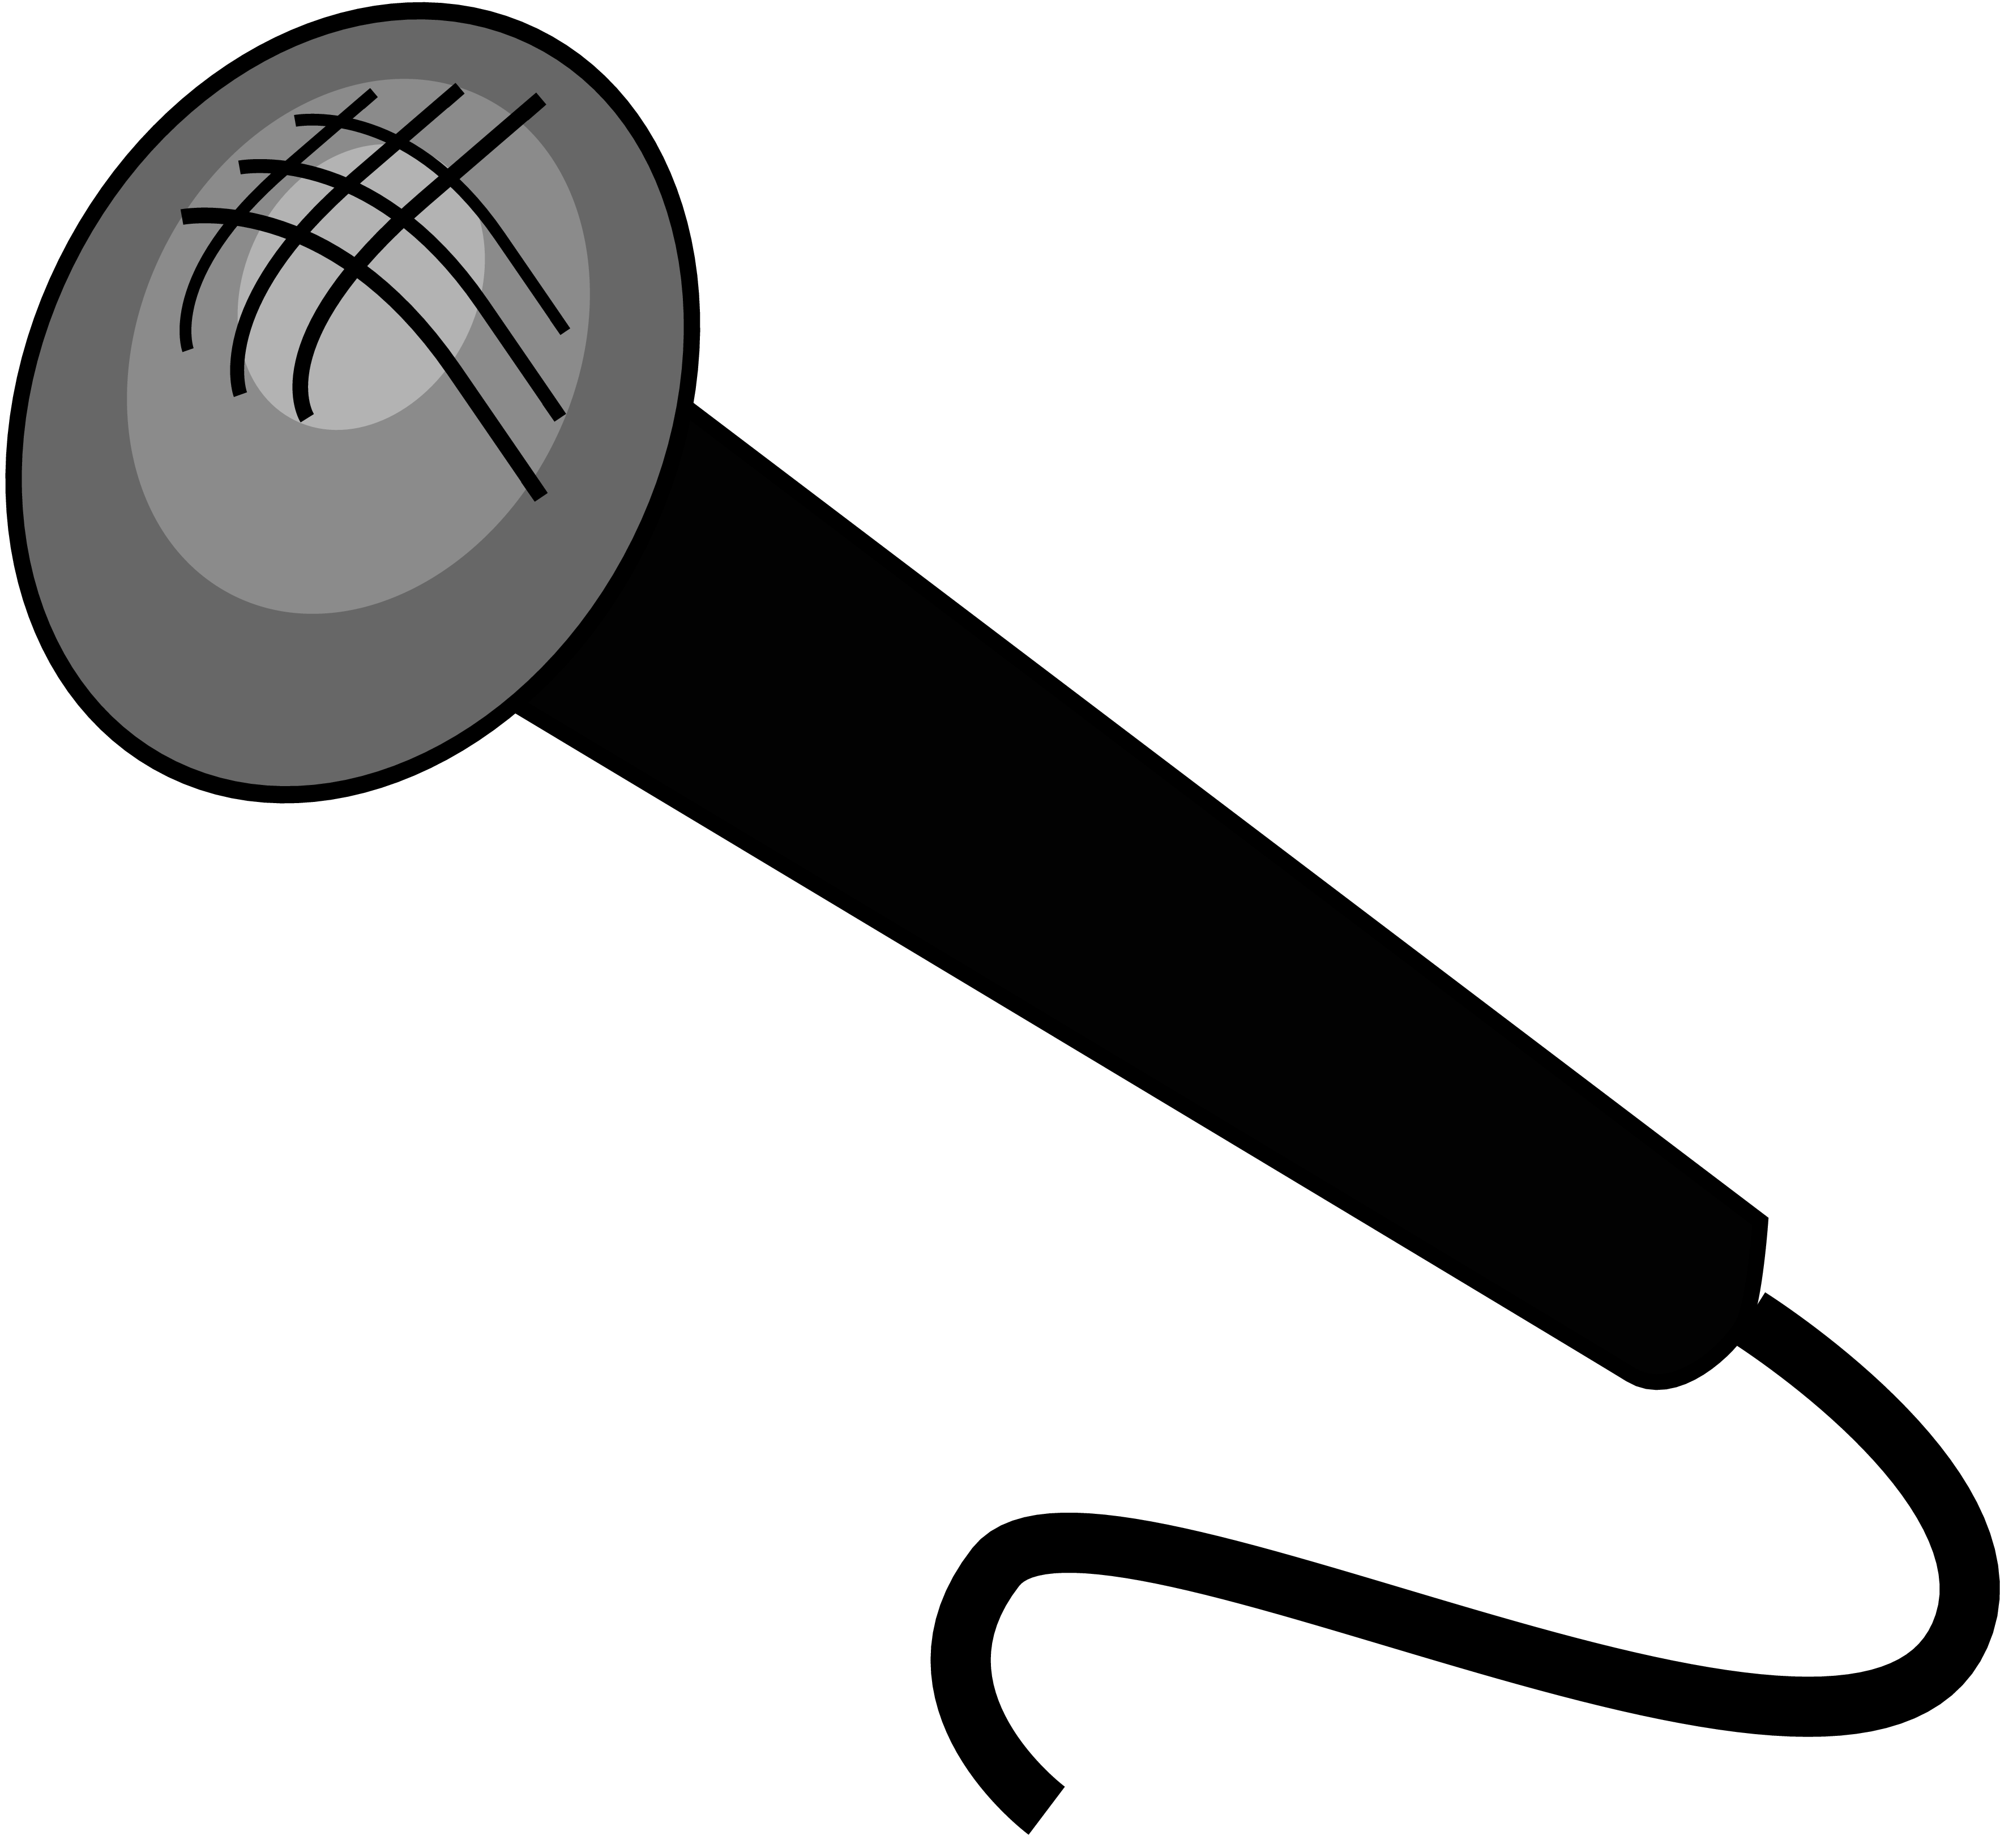 microphone clipart